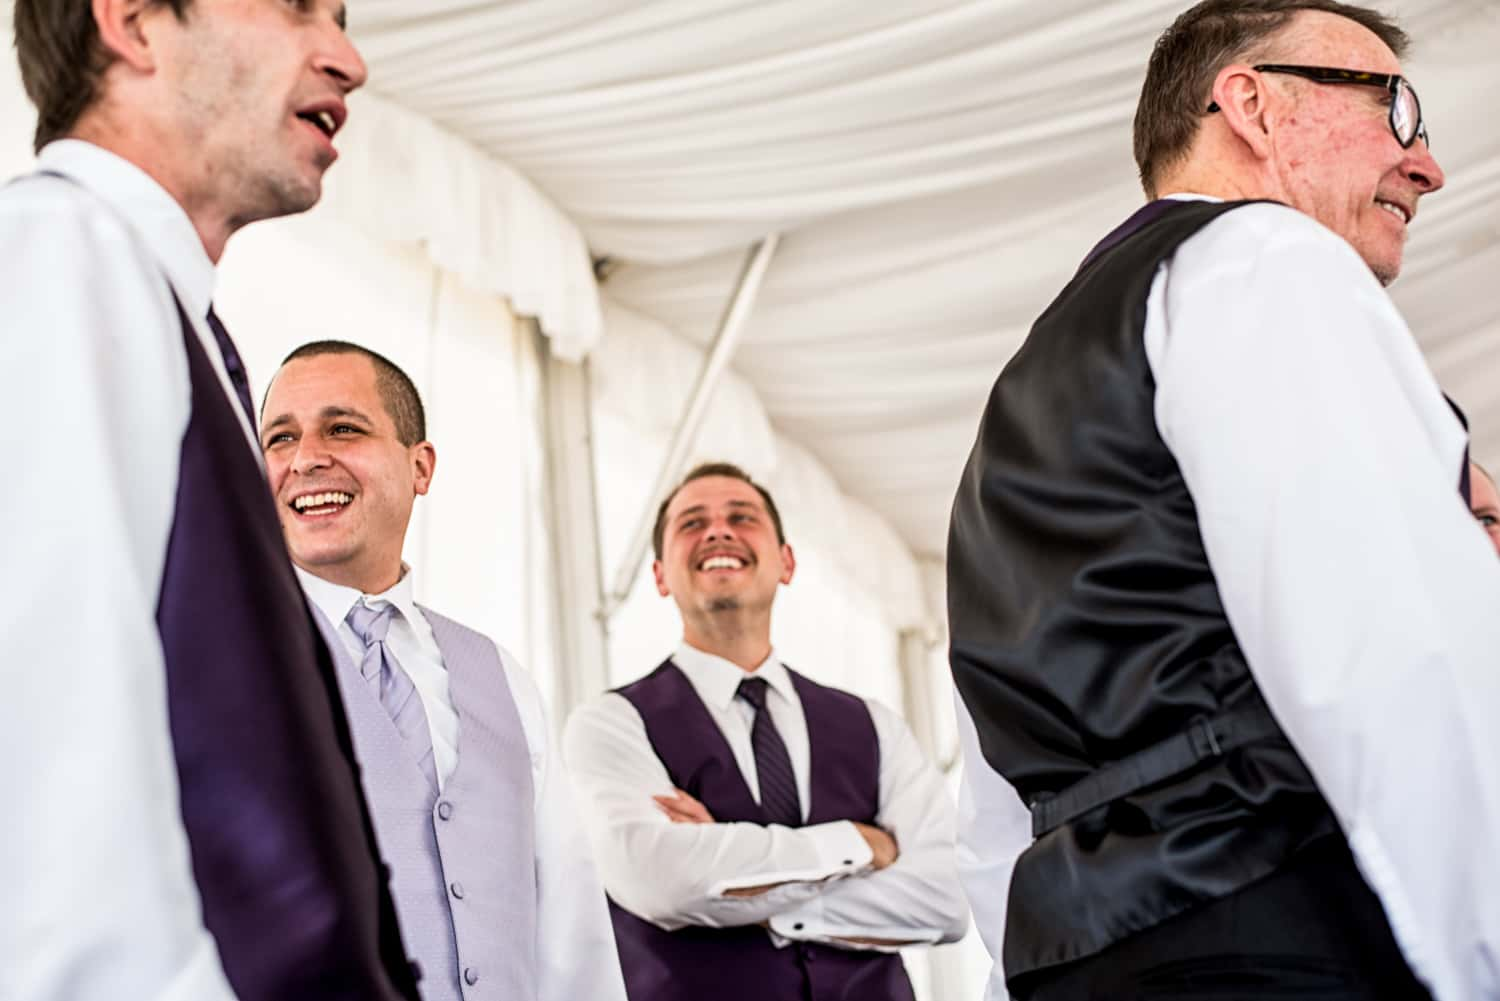 Four groomsmen wearing purple vests and purple ties are all standing talking while looking in different directions.